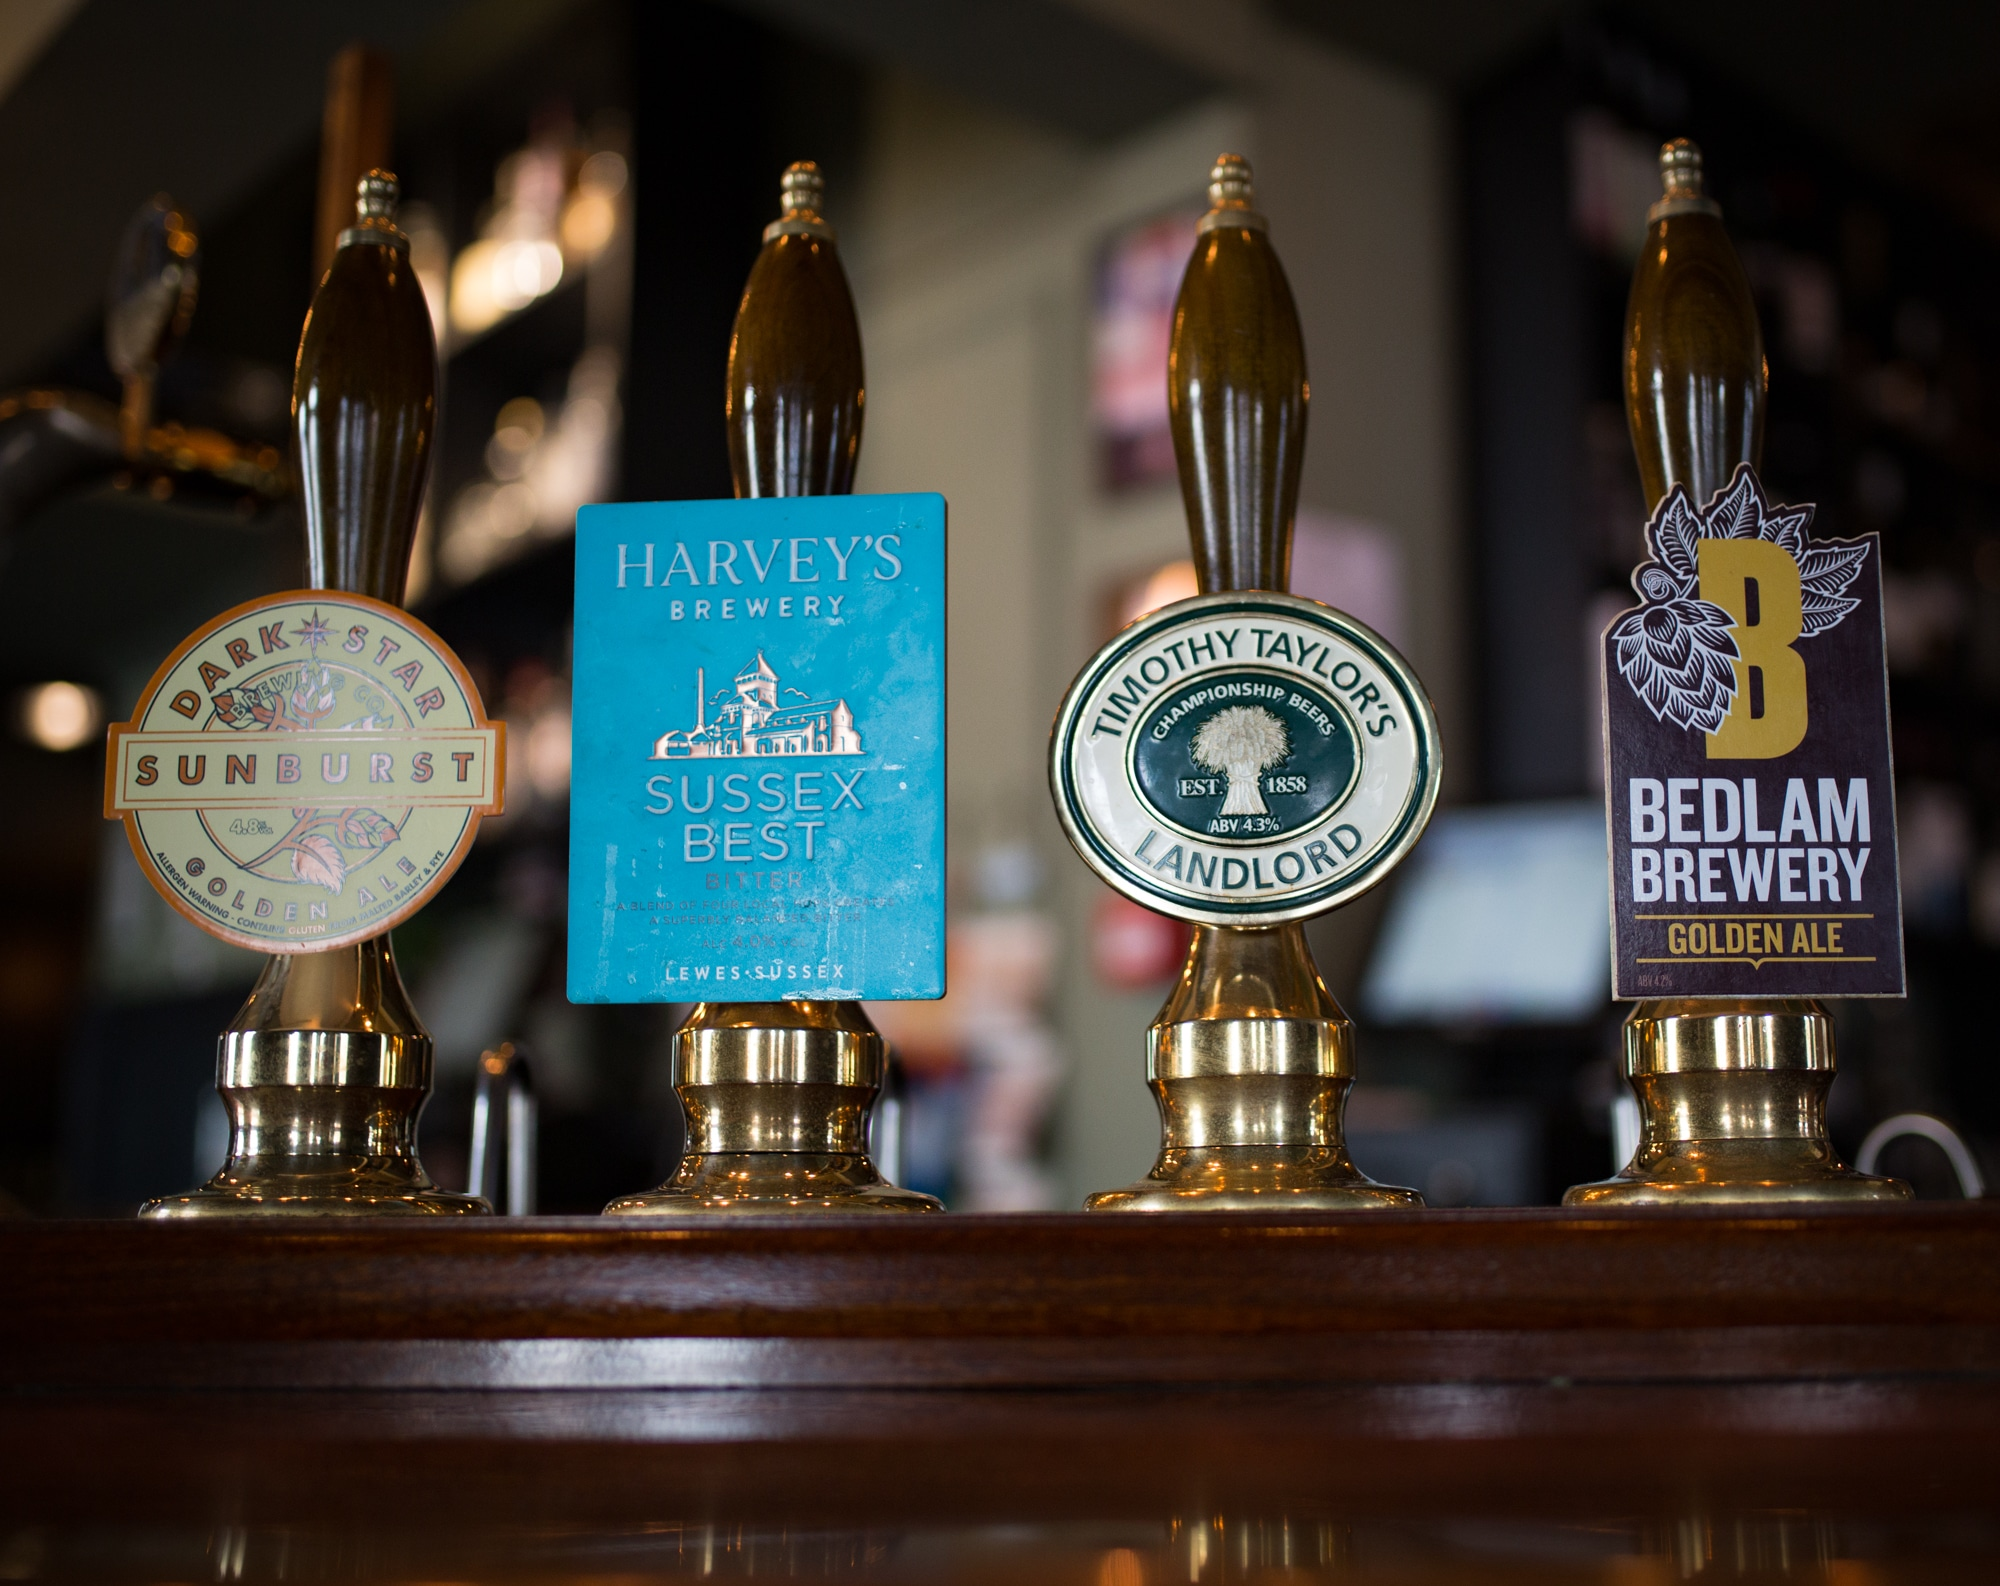 Beer taps at the Better Halh pub in Hove